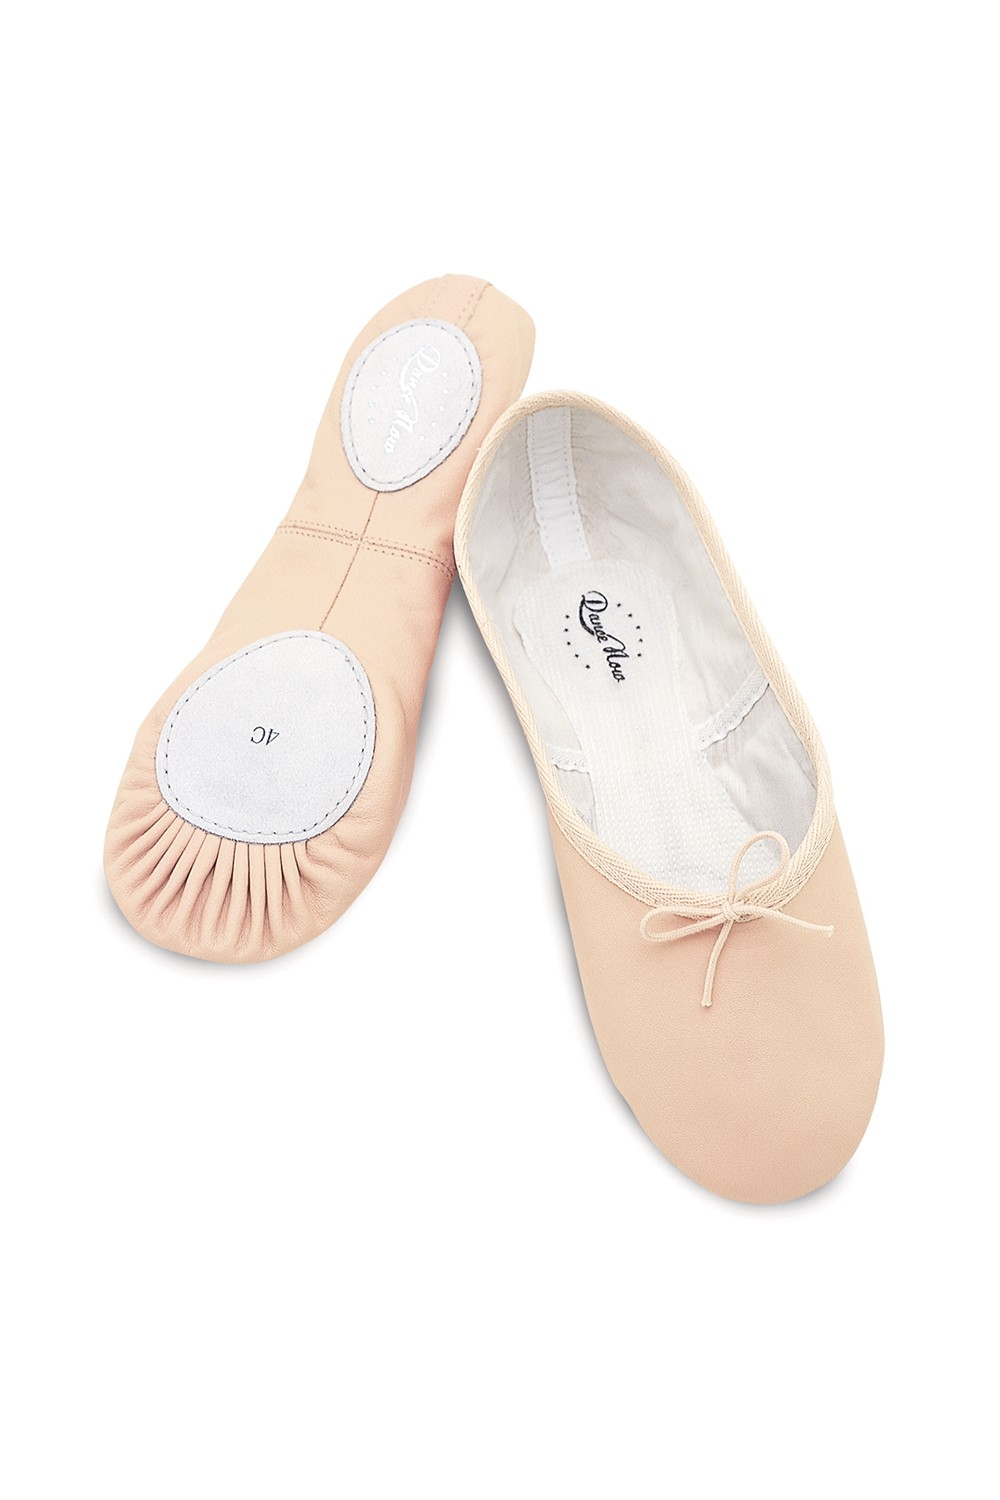 Dance Now S/s Ballet Girl's Ballet Shoes